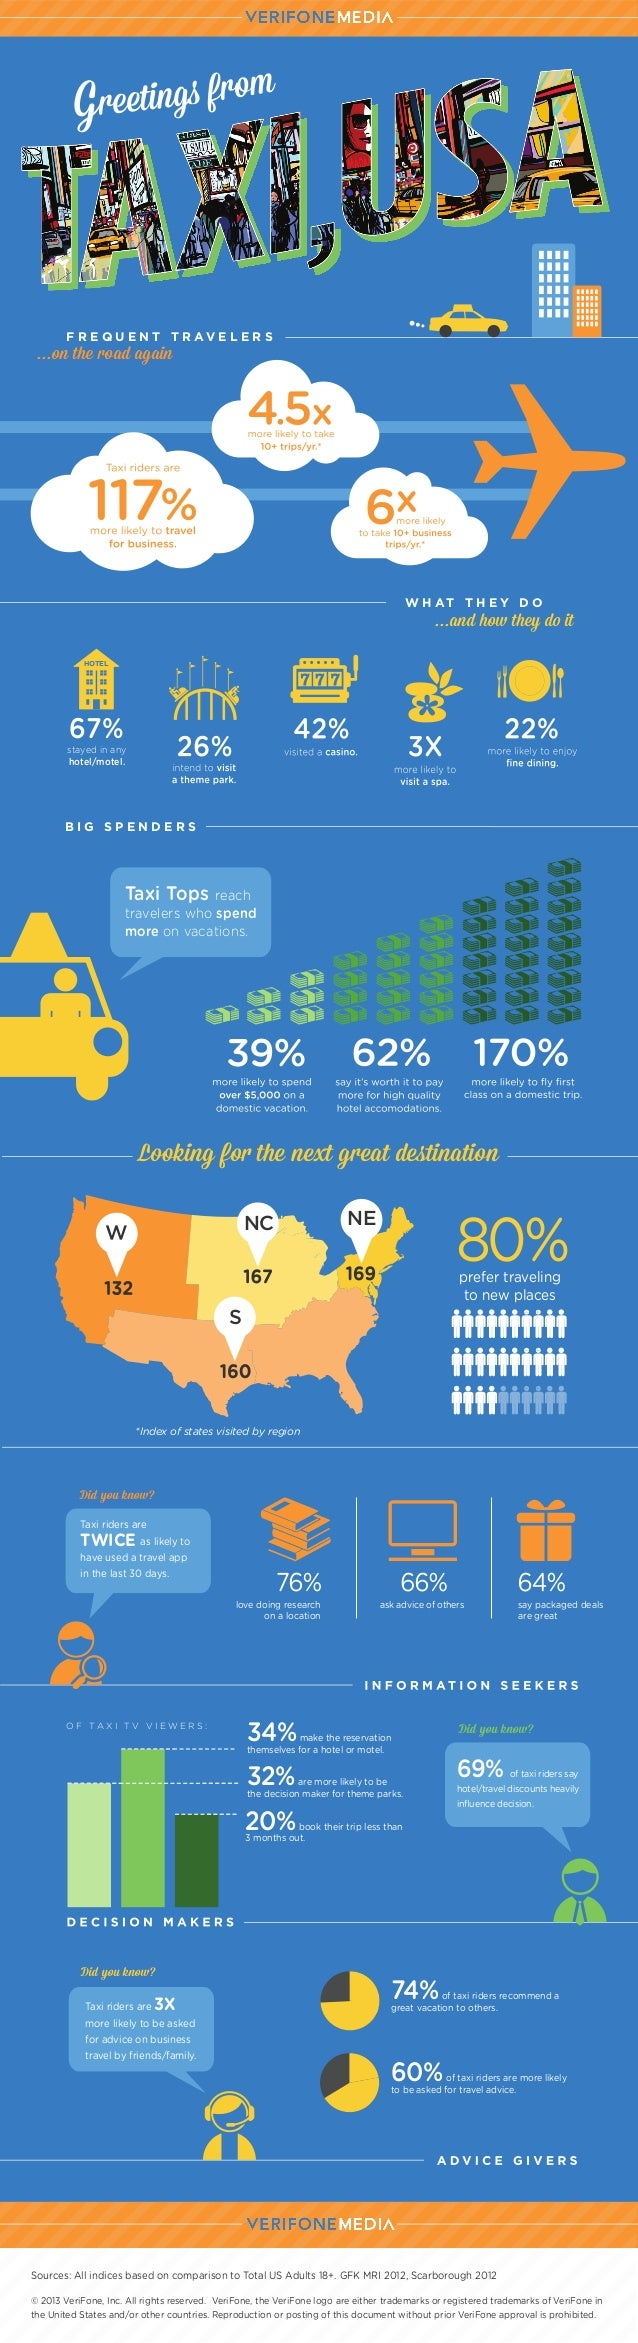 Travel and Taxi, USA!